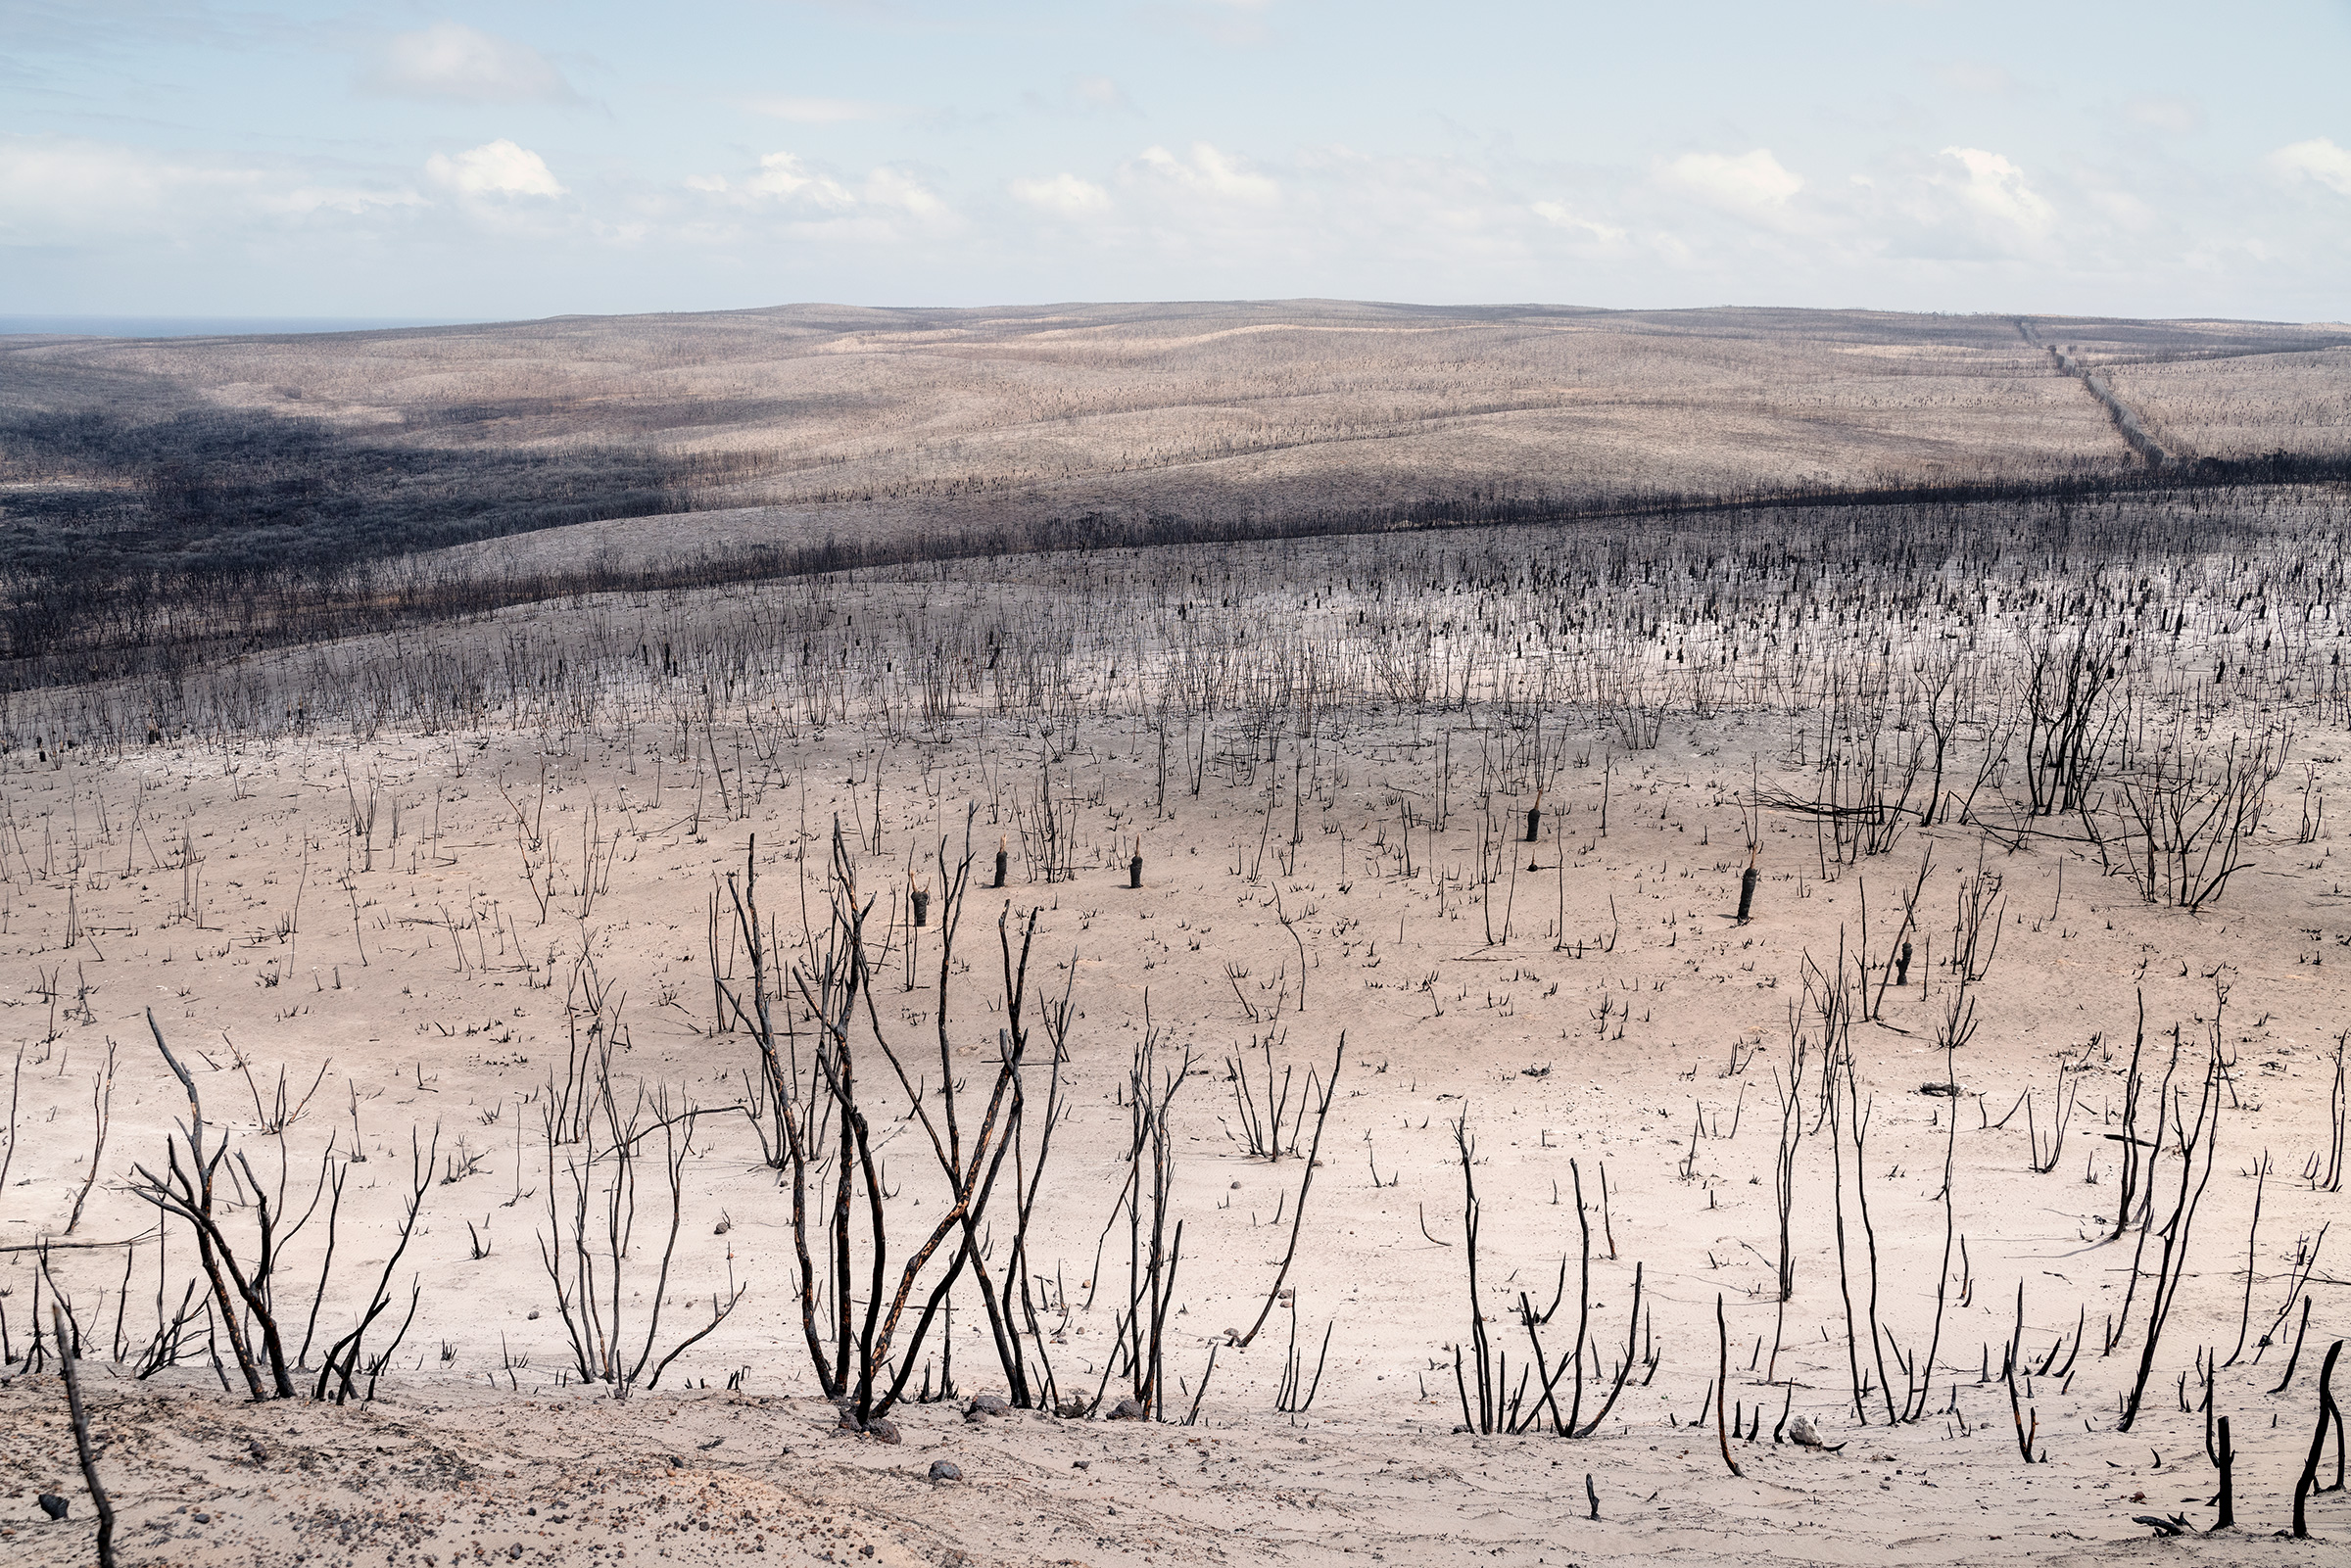 A view of bushfire-ravaged Flinders Chase National Park on Kangaroo Island, South Australia, in January 2020.